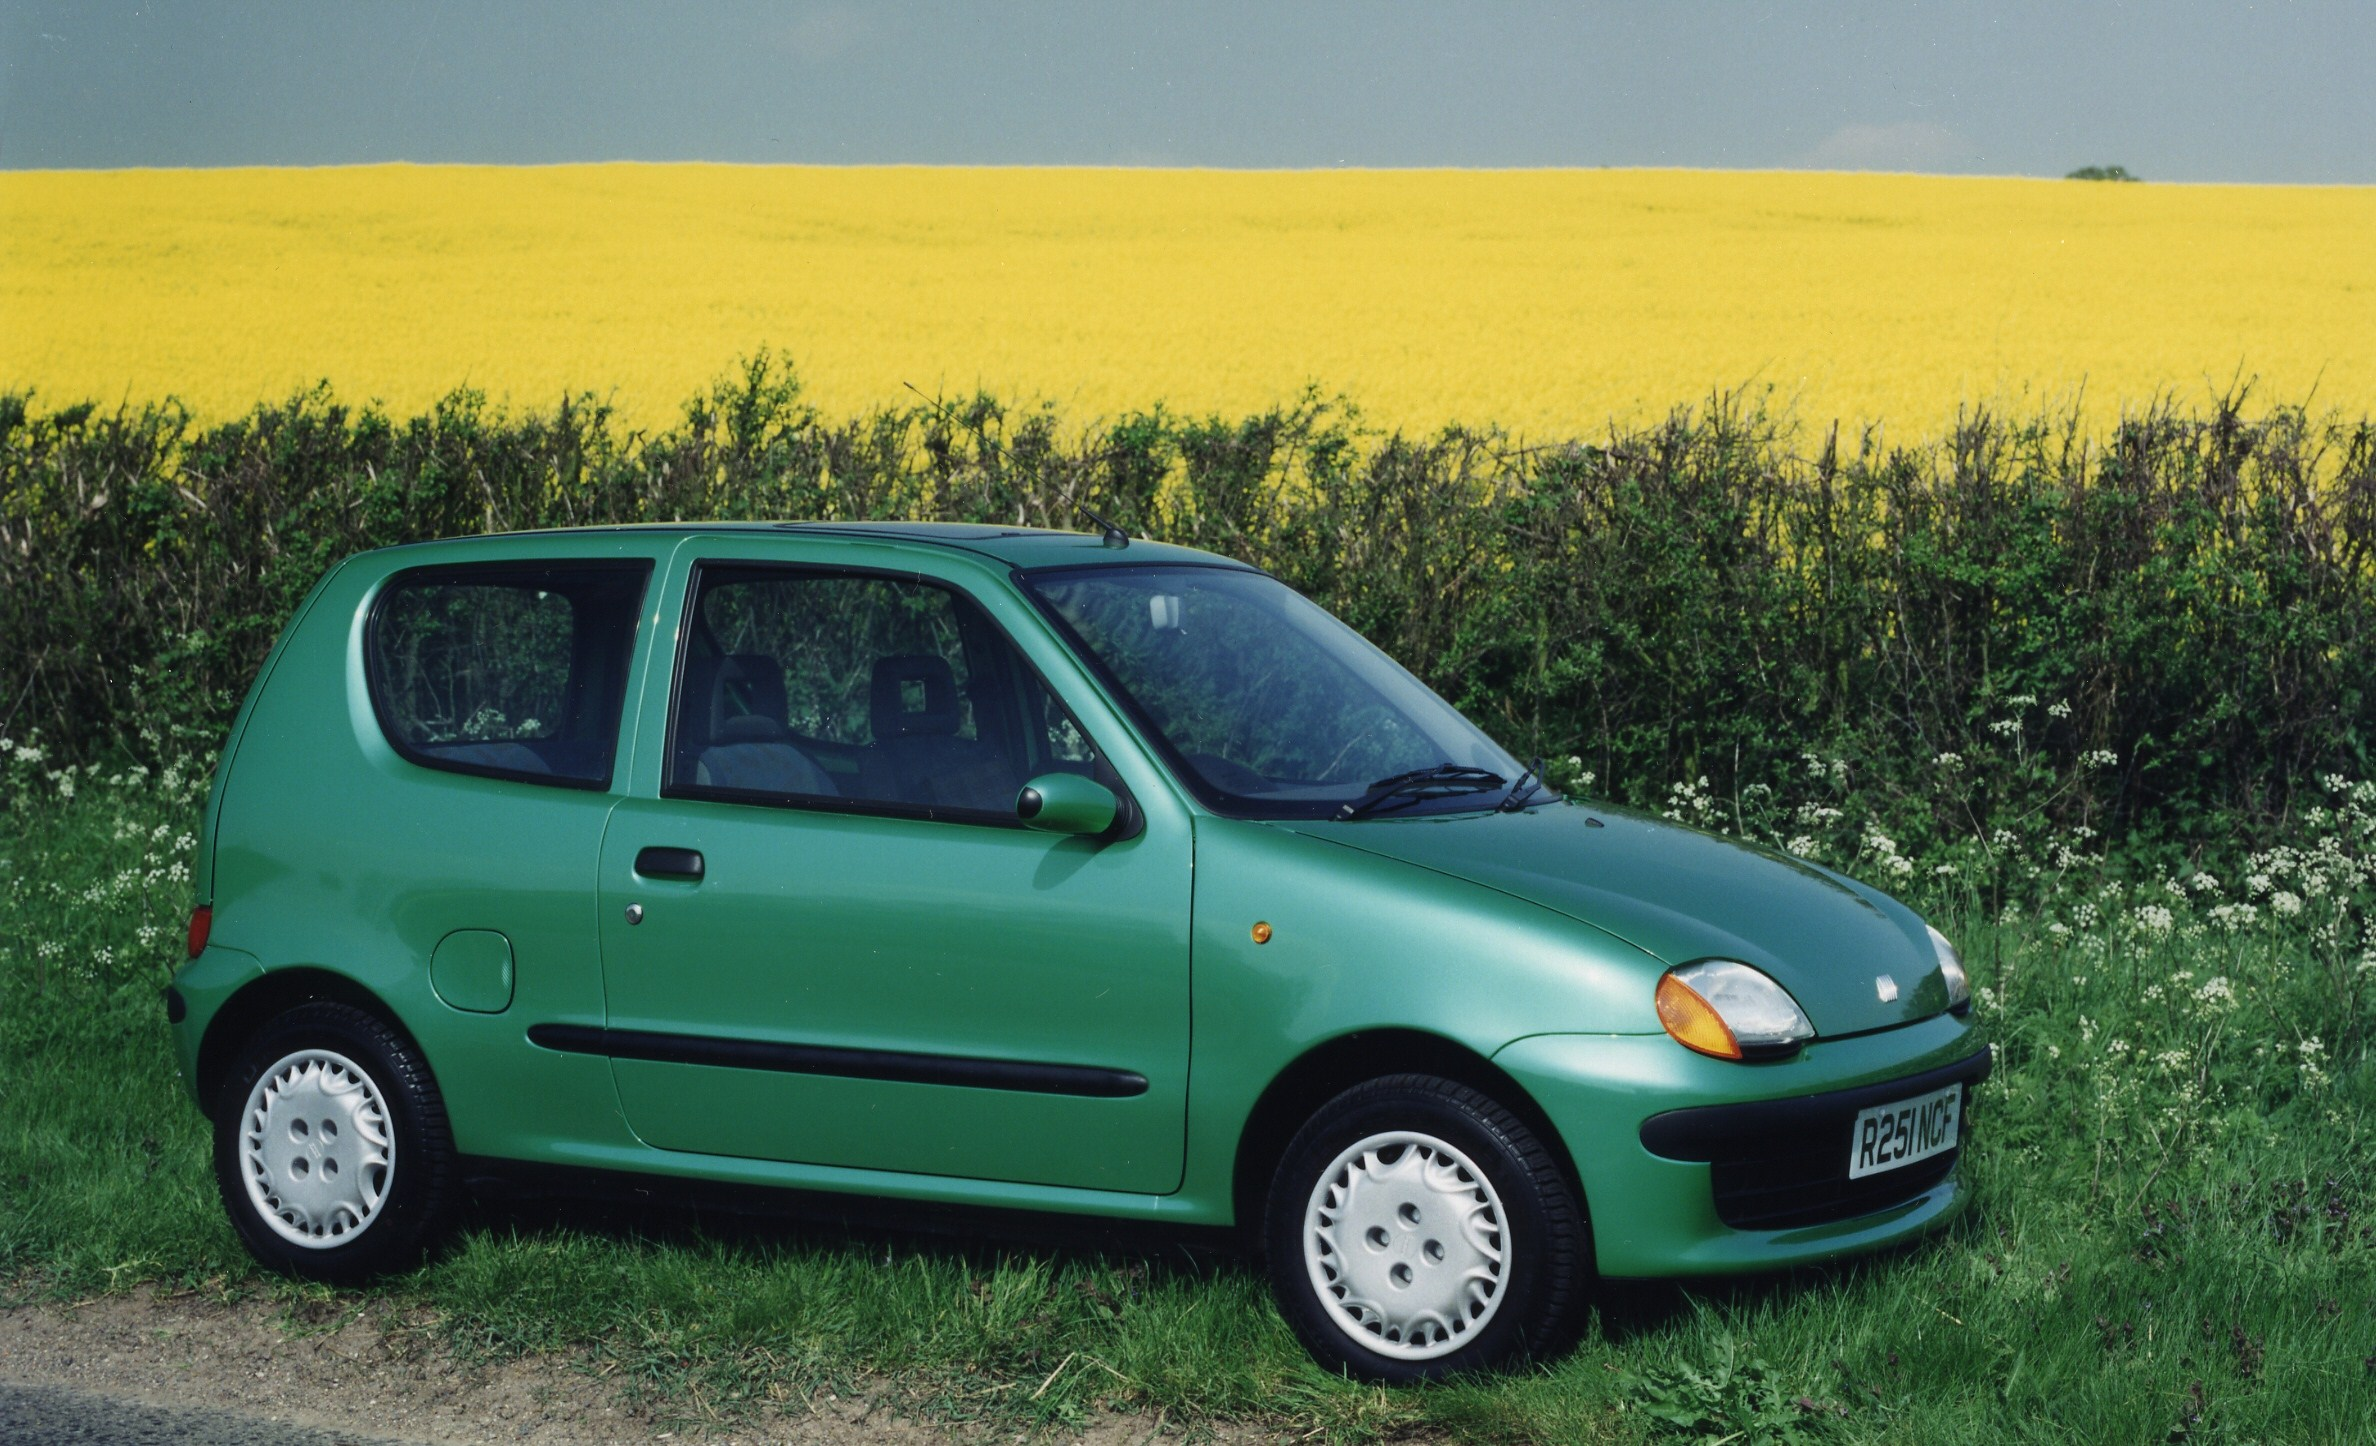 fiat seicento wallpaper - photo #47